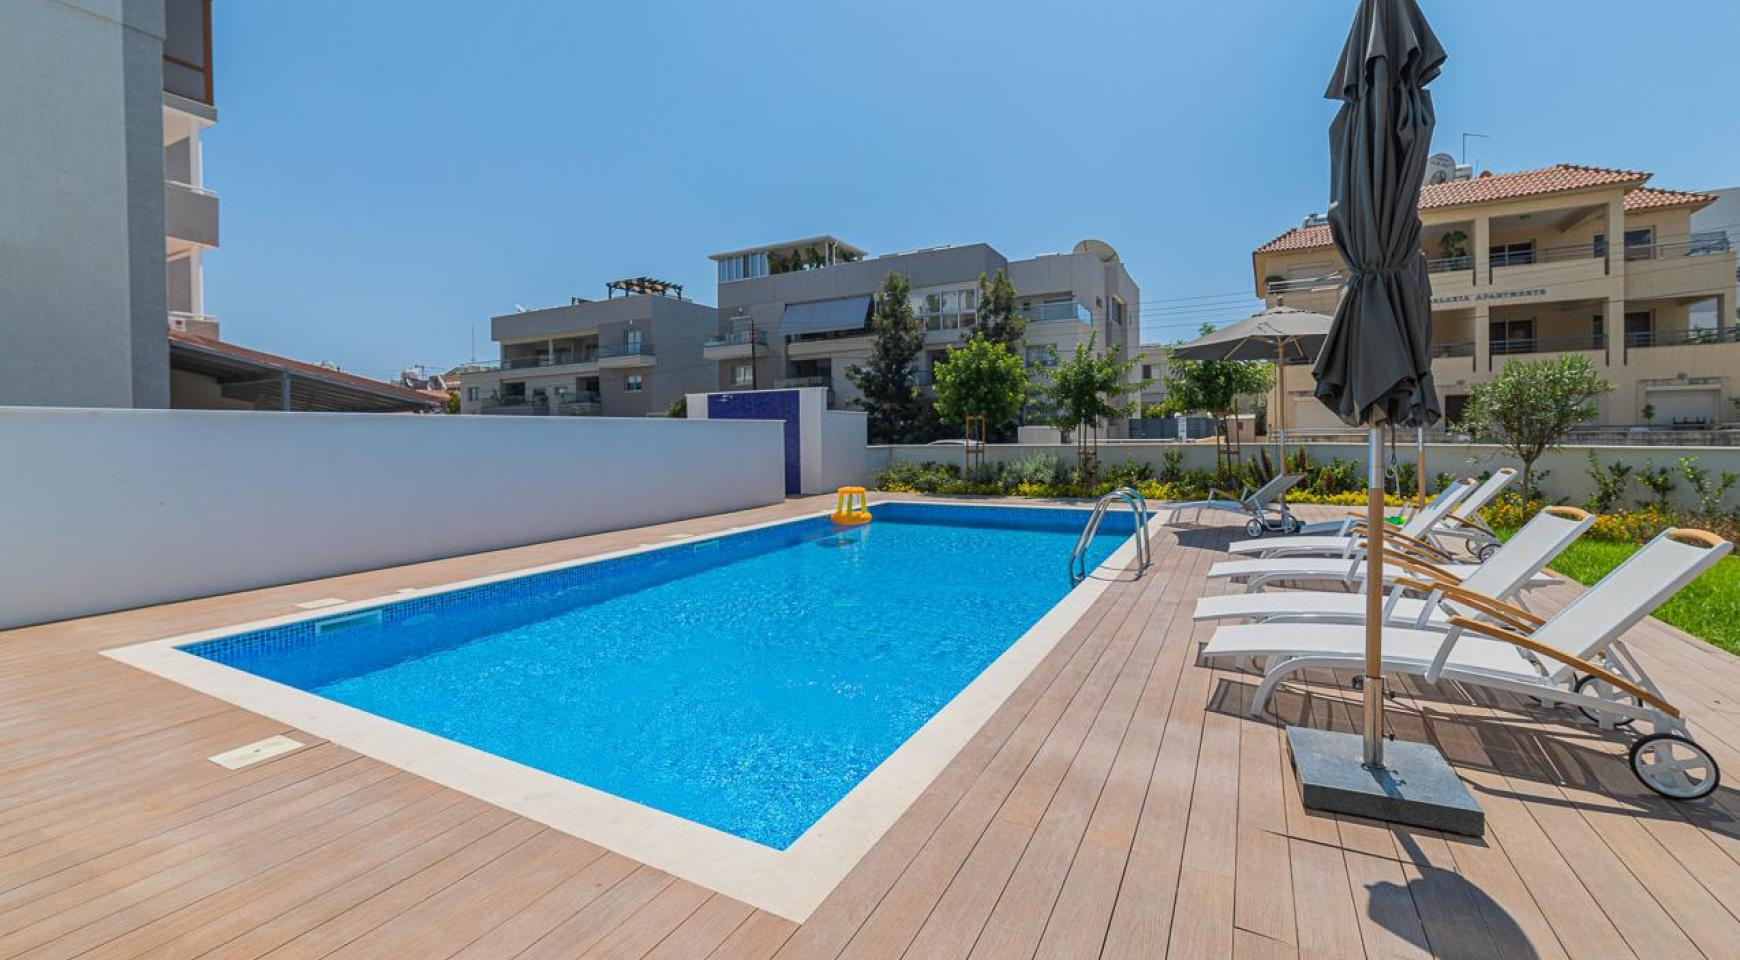 Malibu Residence. Luxury 3 Bedroom Penthouse 401 with Private Swimming Pool - 7